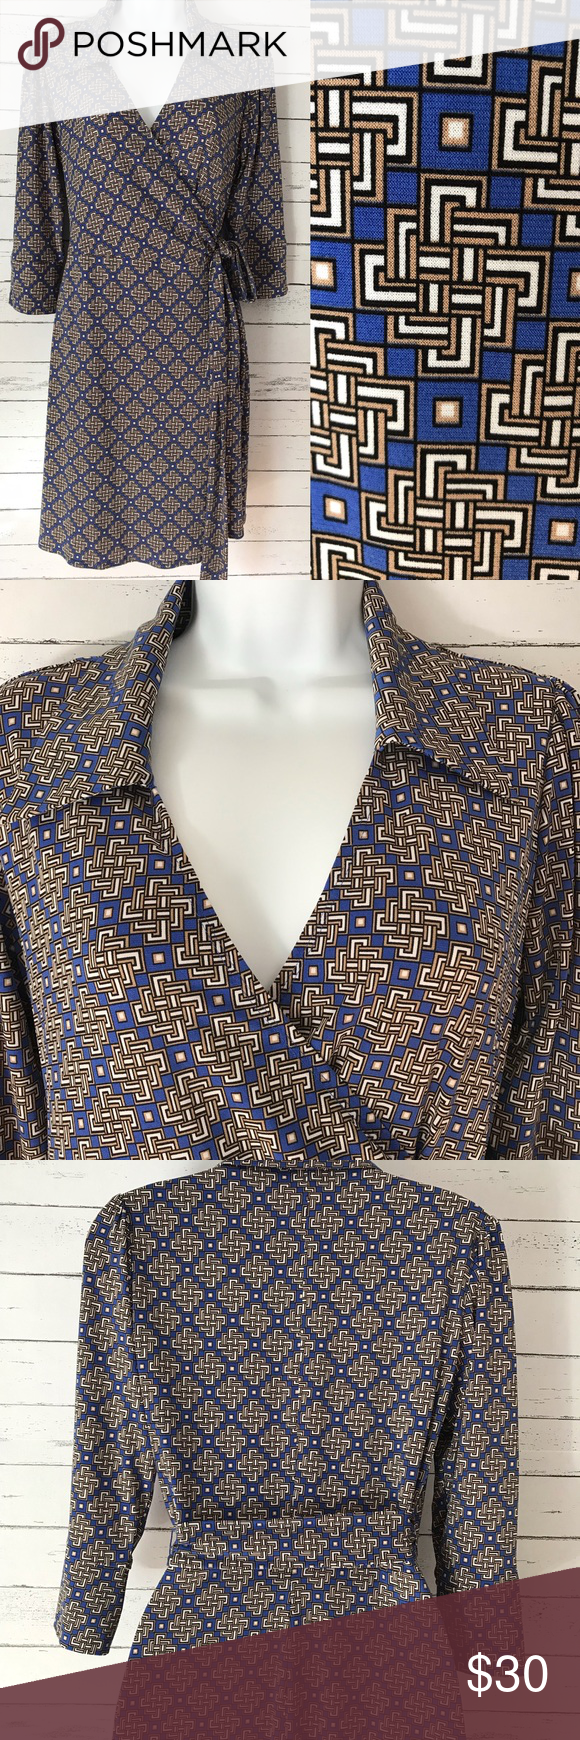 Spotted while shopping on Poshmark Laundry by Shelli Segal Geometric Print Wrap Dress By Shelli Segal  Skirts